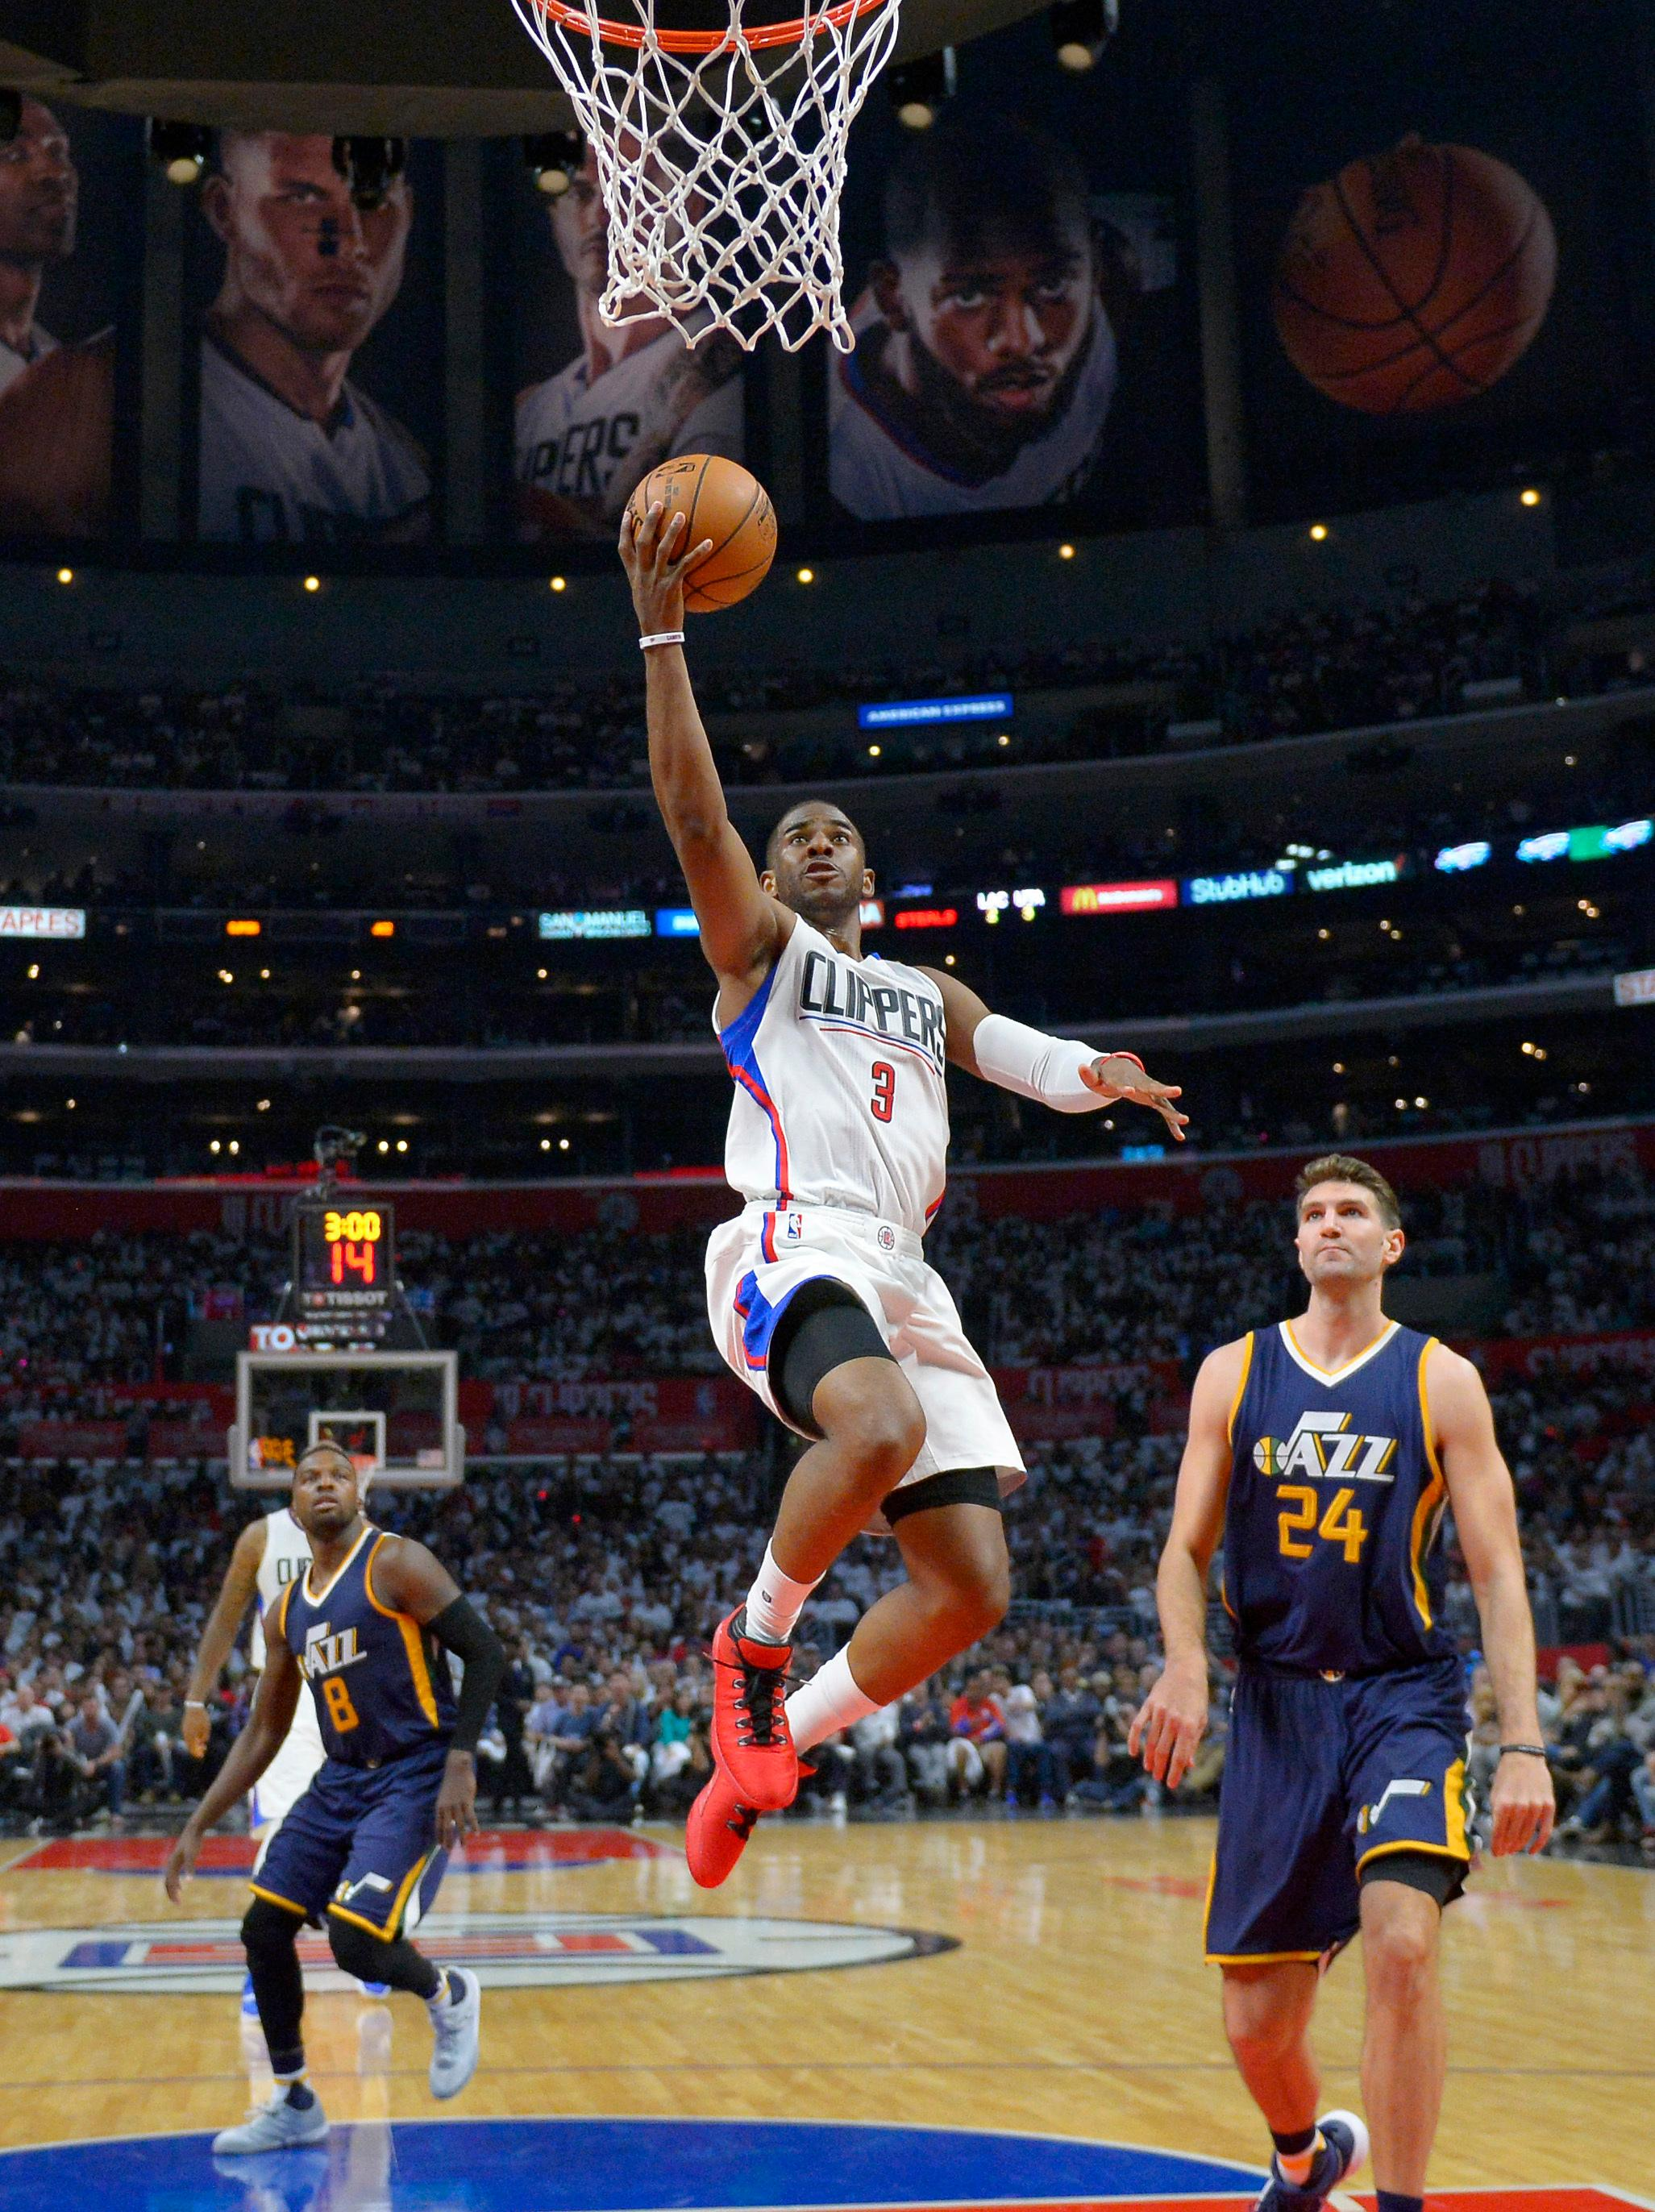 Los Angeles Clippers guard Chris Paul, center, shoots as Utah Jazz guard Shelvin Mack, left, and center Jeff Withey defend during the second half in Game 1 of an NBA basketball first-round playoff series, Saturday, April 15, 2017, in Los Angeles. The Jazz won 97-95. (AP Photo/Mark J. Terrill)